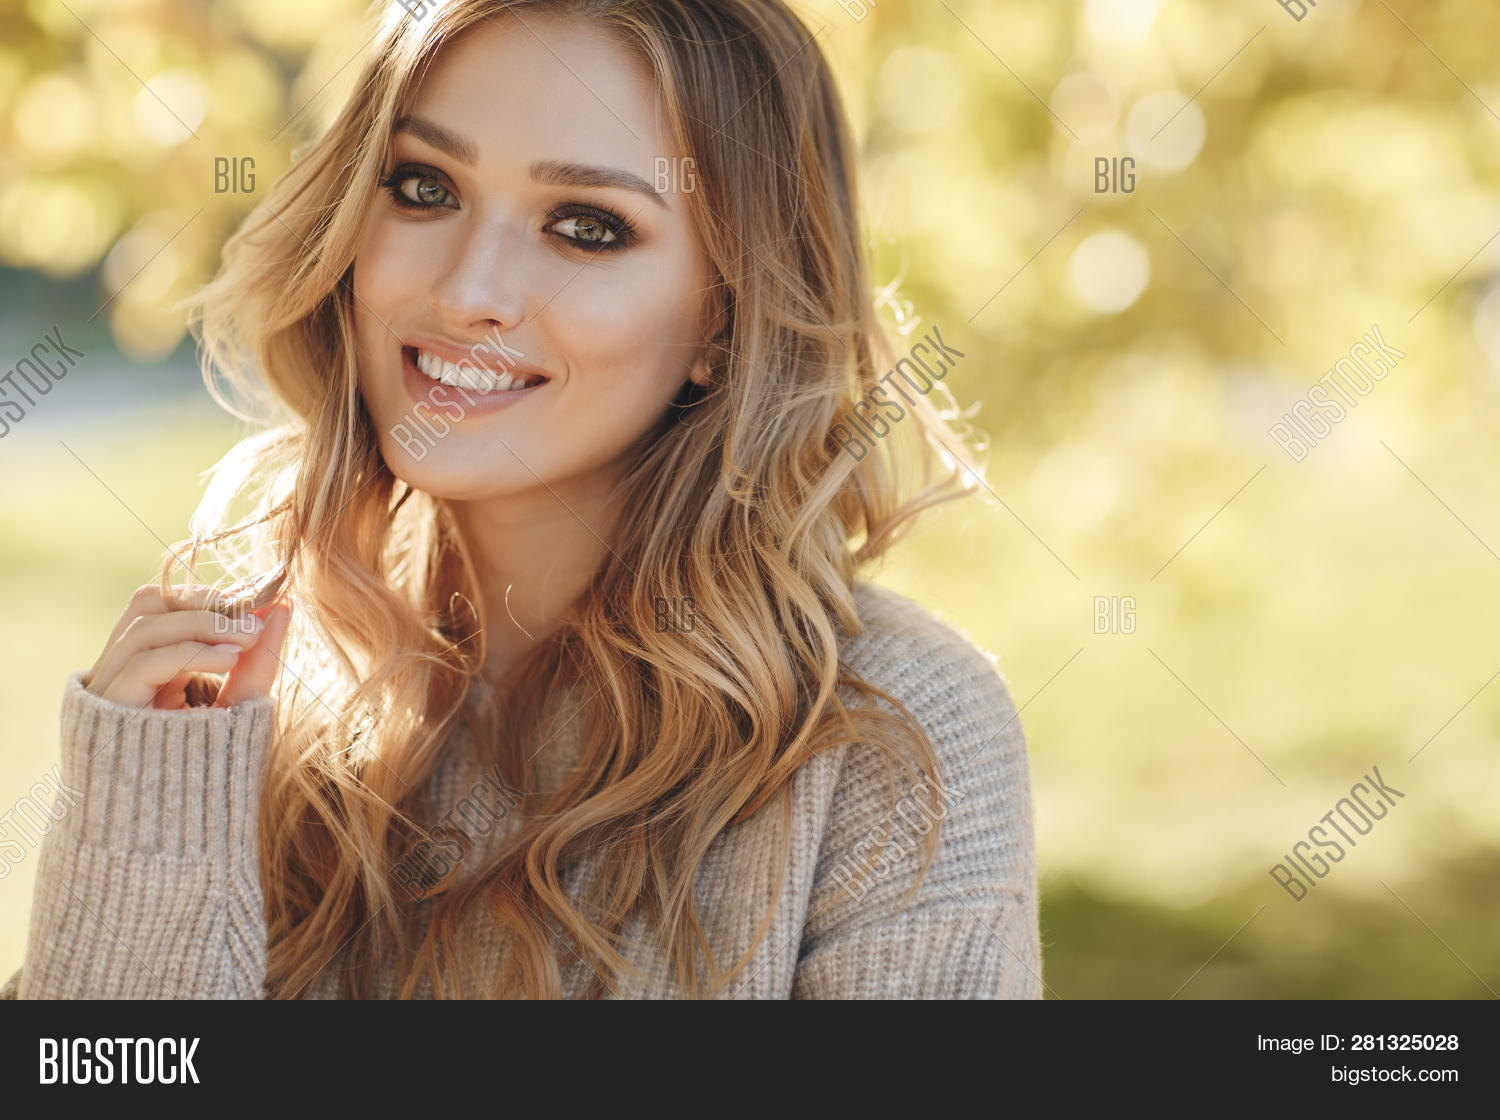 adult,autumn,beautiful,beauty,blonde,bright,caucasian,charming,coat,color,face,fall,fashion,female,foliage,forest,girl,golden,green,hand,happy,hold,lady,leaf,leafed,leaved,leisure,lifestyle,natural,nature,outside,park,people,pretty,relax,rest,season,seasonal,smile,smiling,touching,vacations,white,woman,women,yellow,young